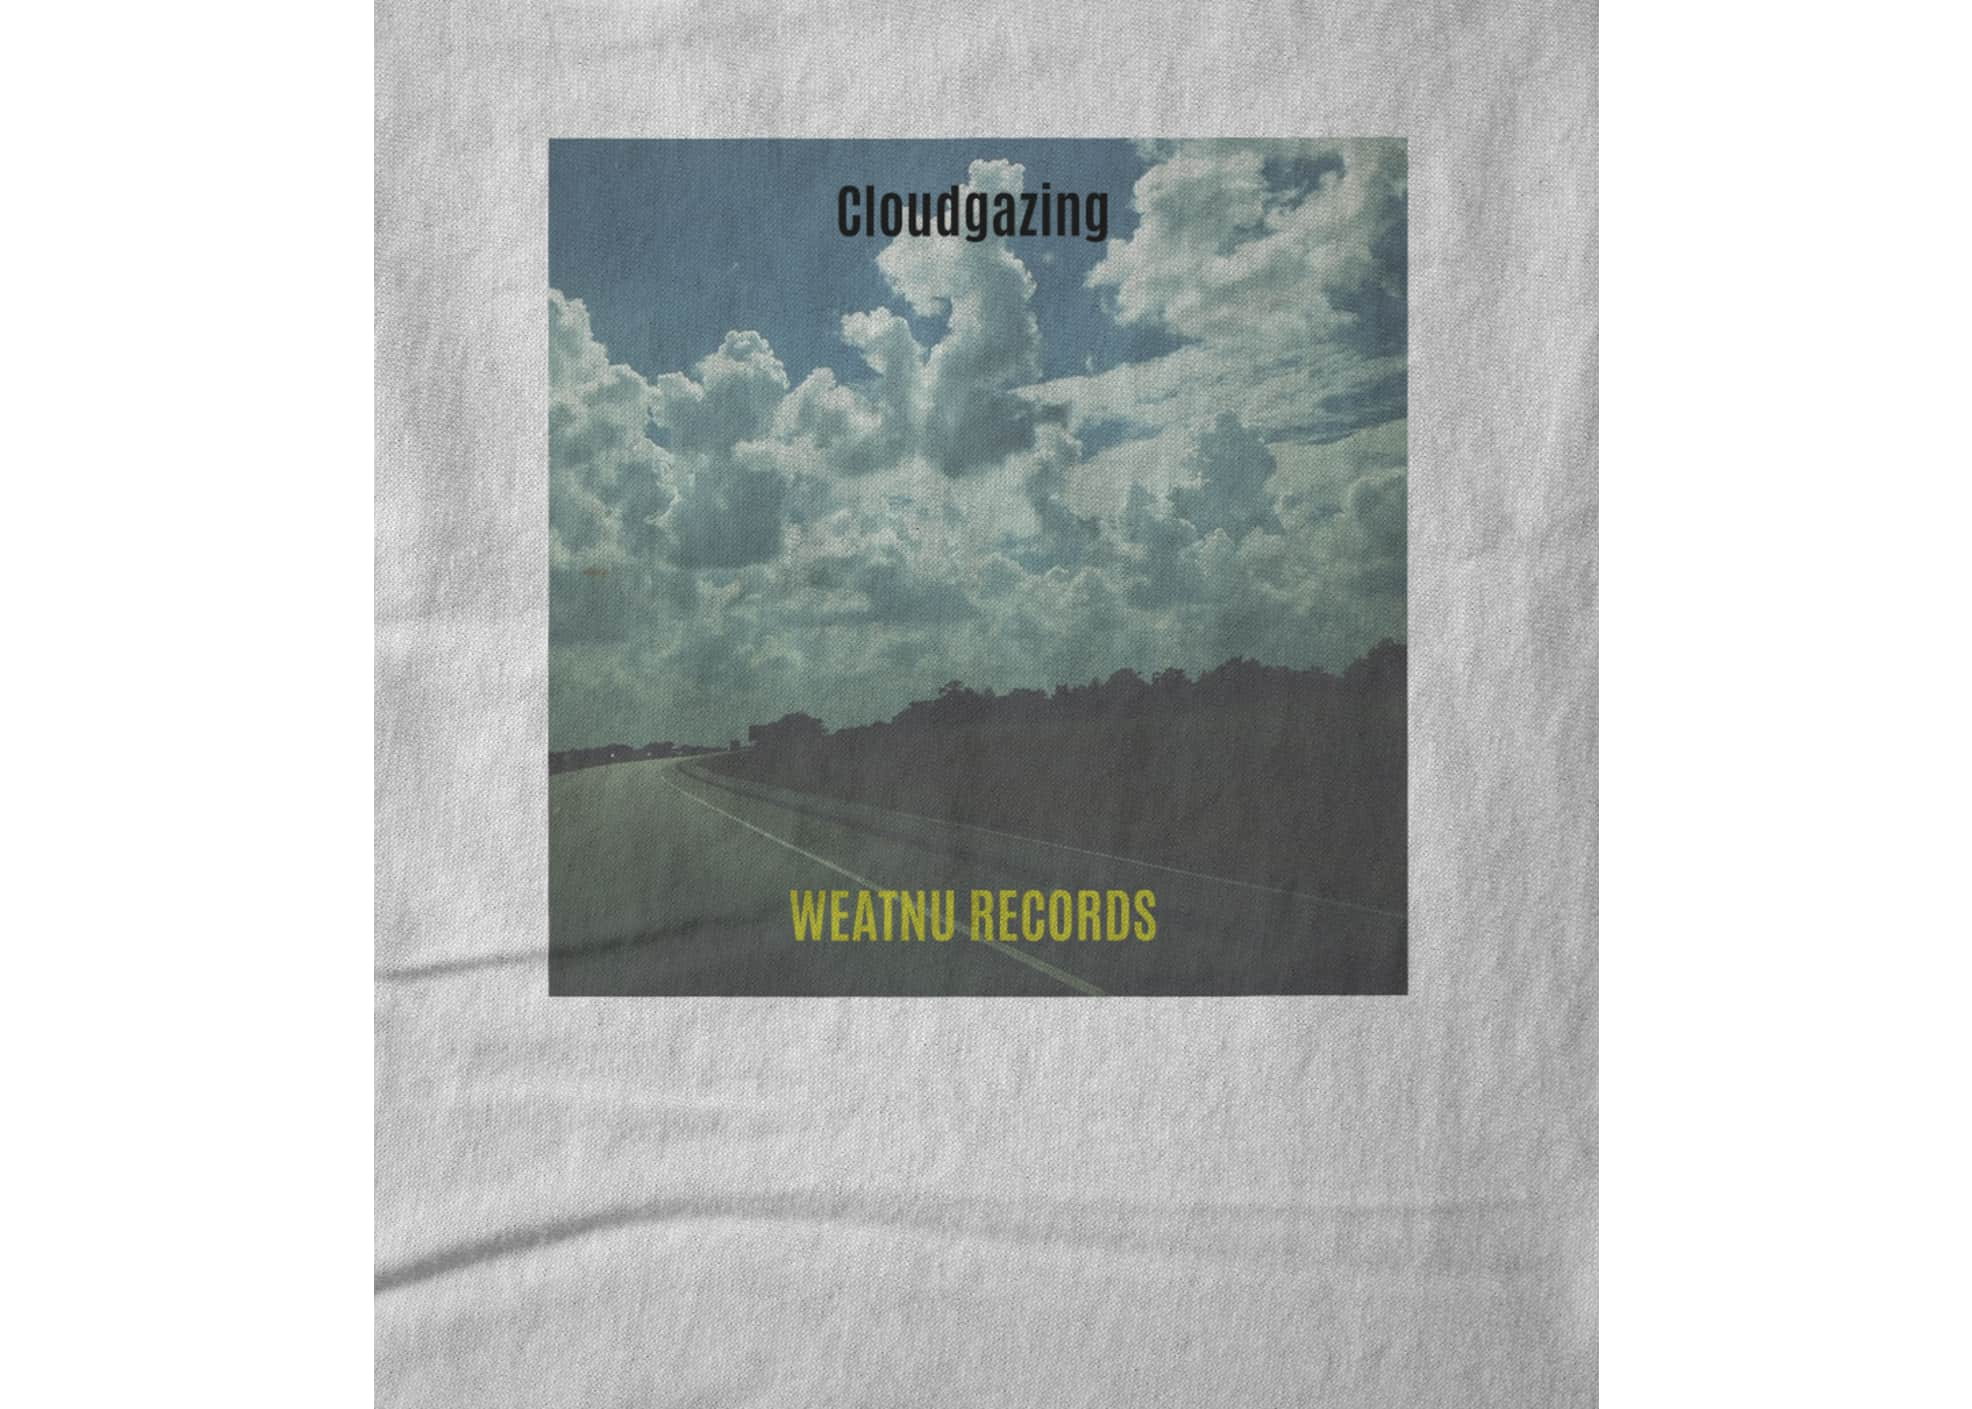 Weatnu records  cloudgazing by weatnu records  1534394821